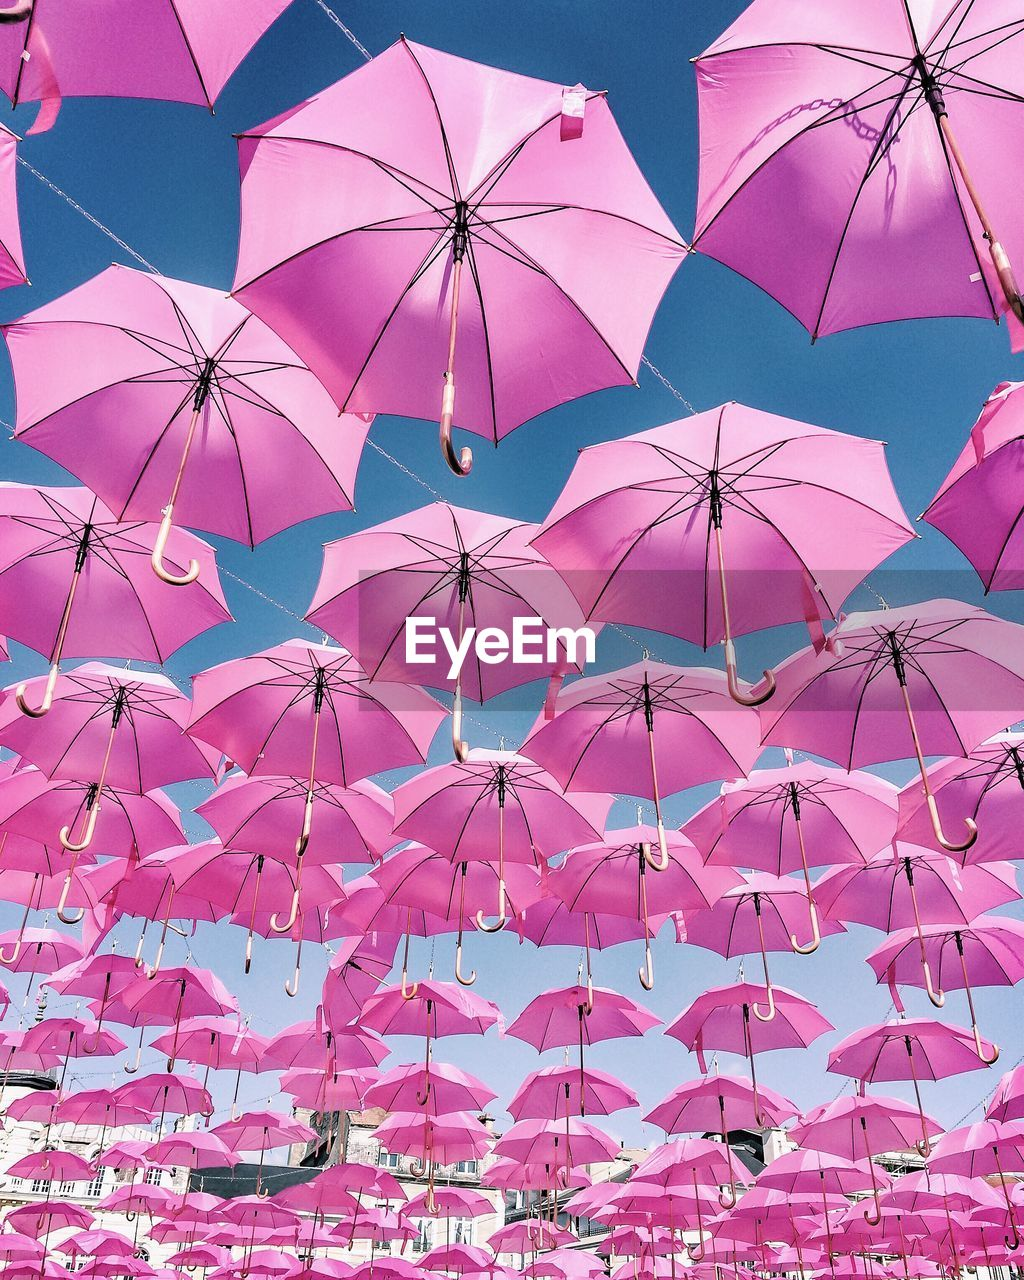 Low Angle View Of Pink Umbrellas Handing Against Sky